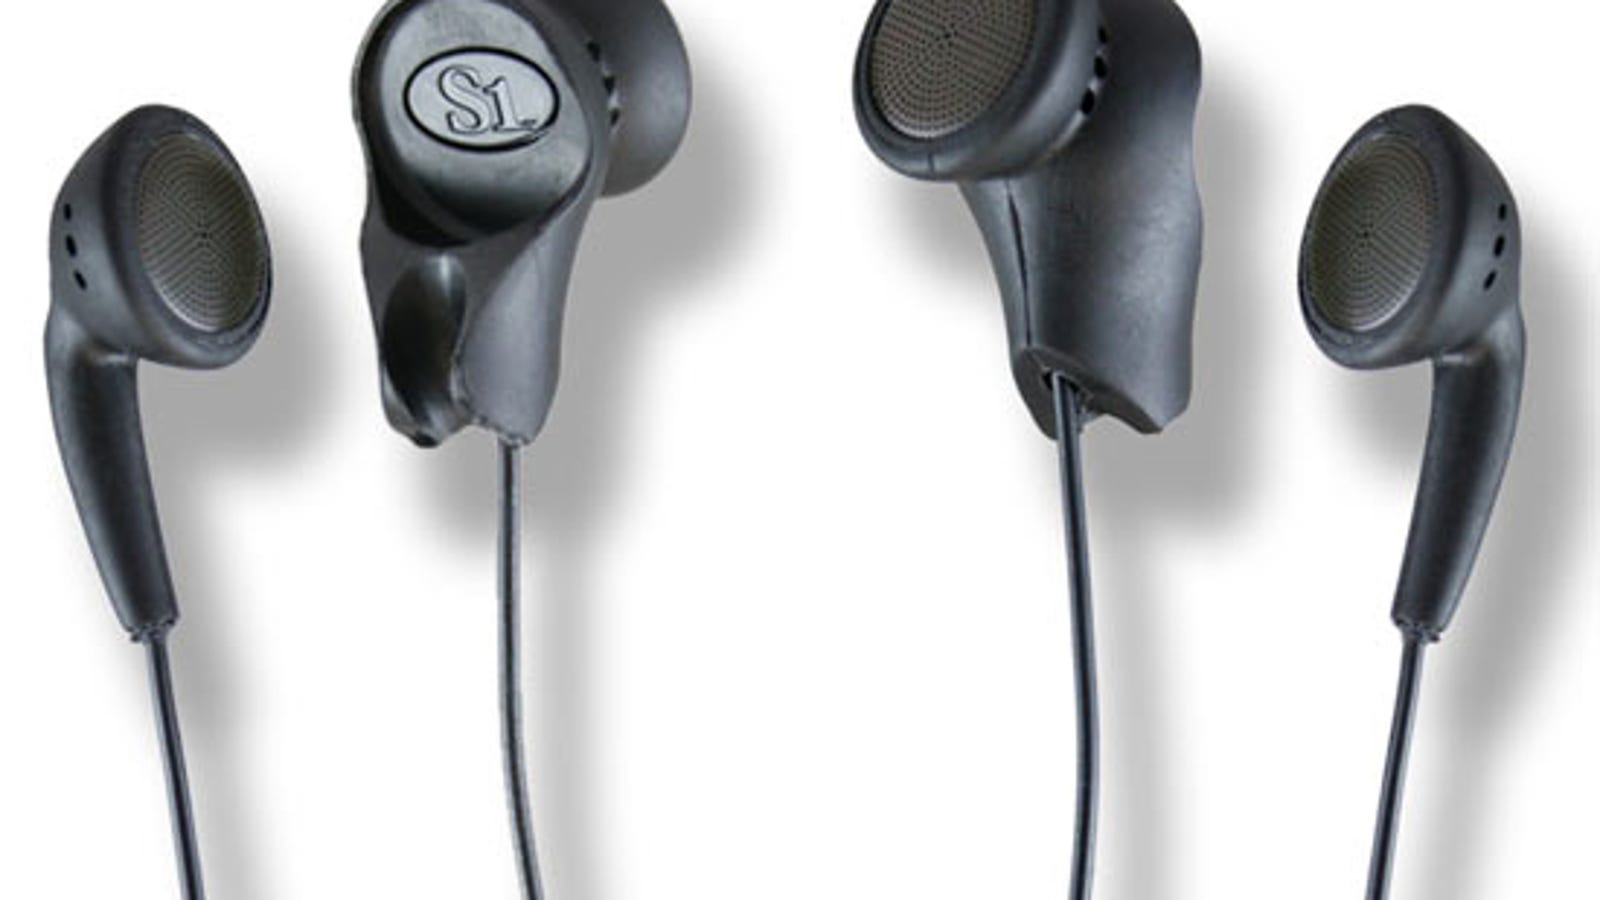 stereophone earbuds in-line mic - BudBud Earbuds Let You Share Your Music With Your Buds